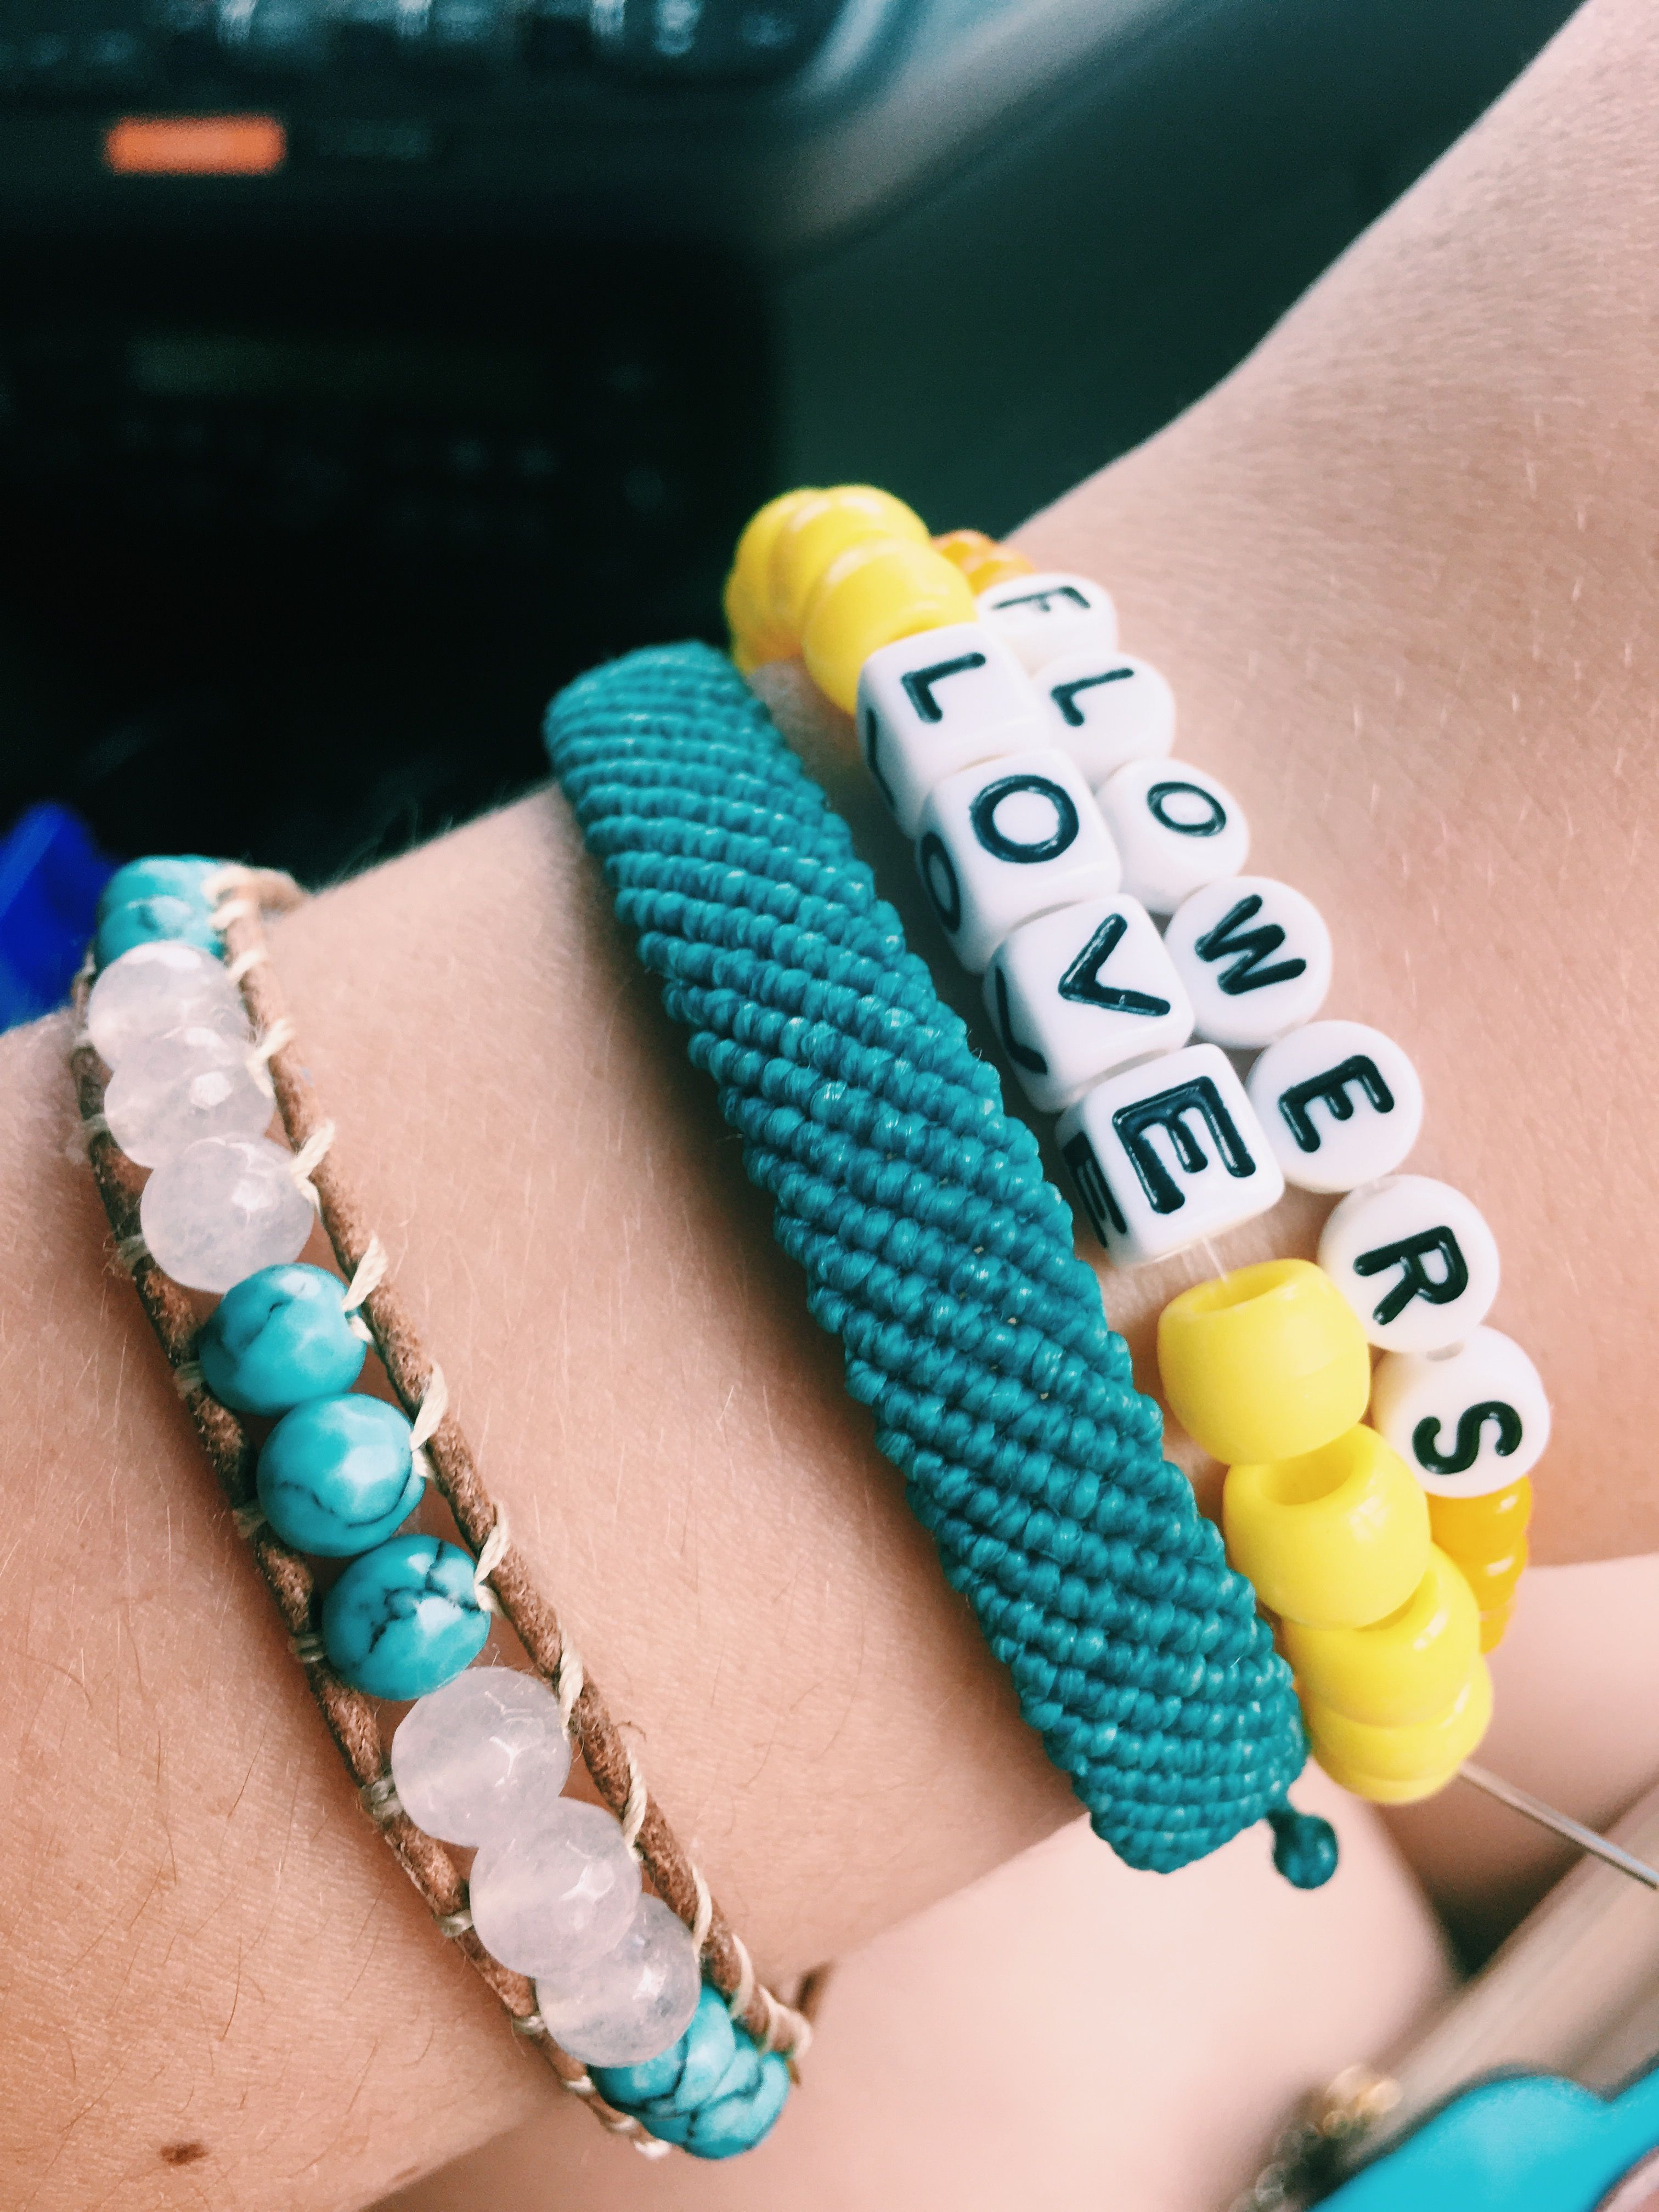 Pin on Women's Must Have Accessories